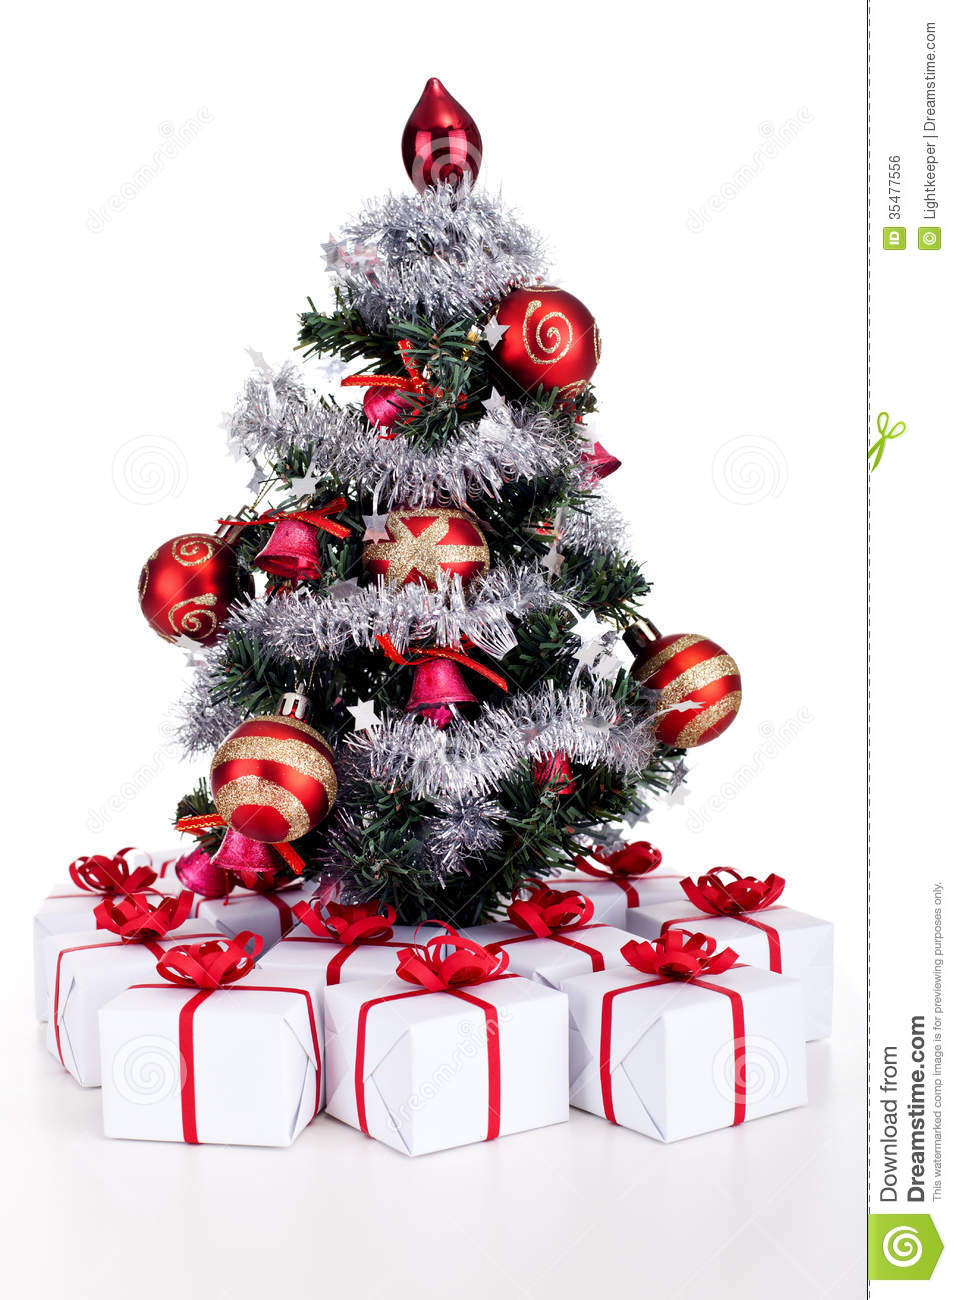 Christmas Tree Decor With Ribbon